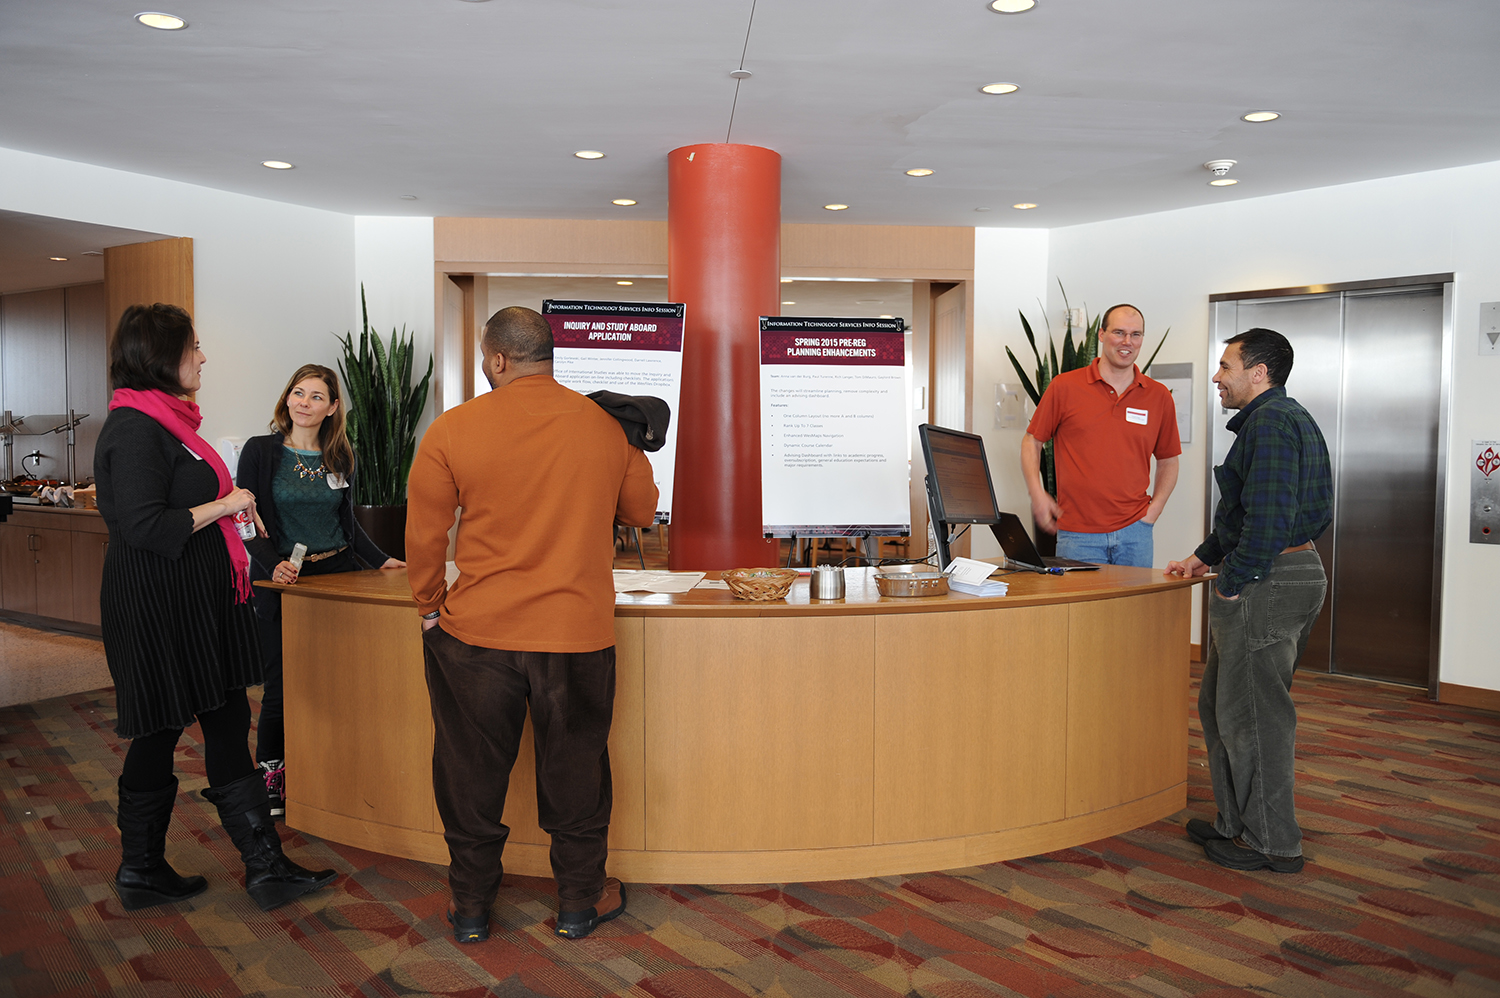 Participants learned about new and emerging technologies that ITS will be introducing in the coming year.